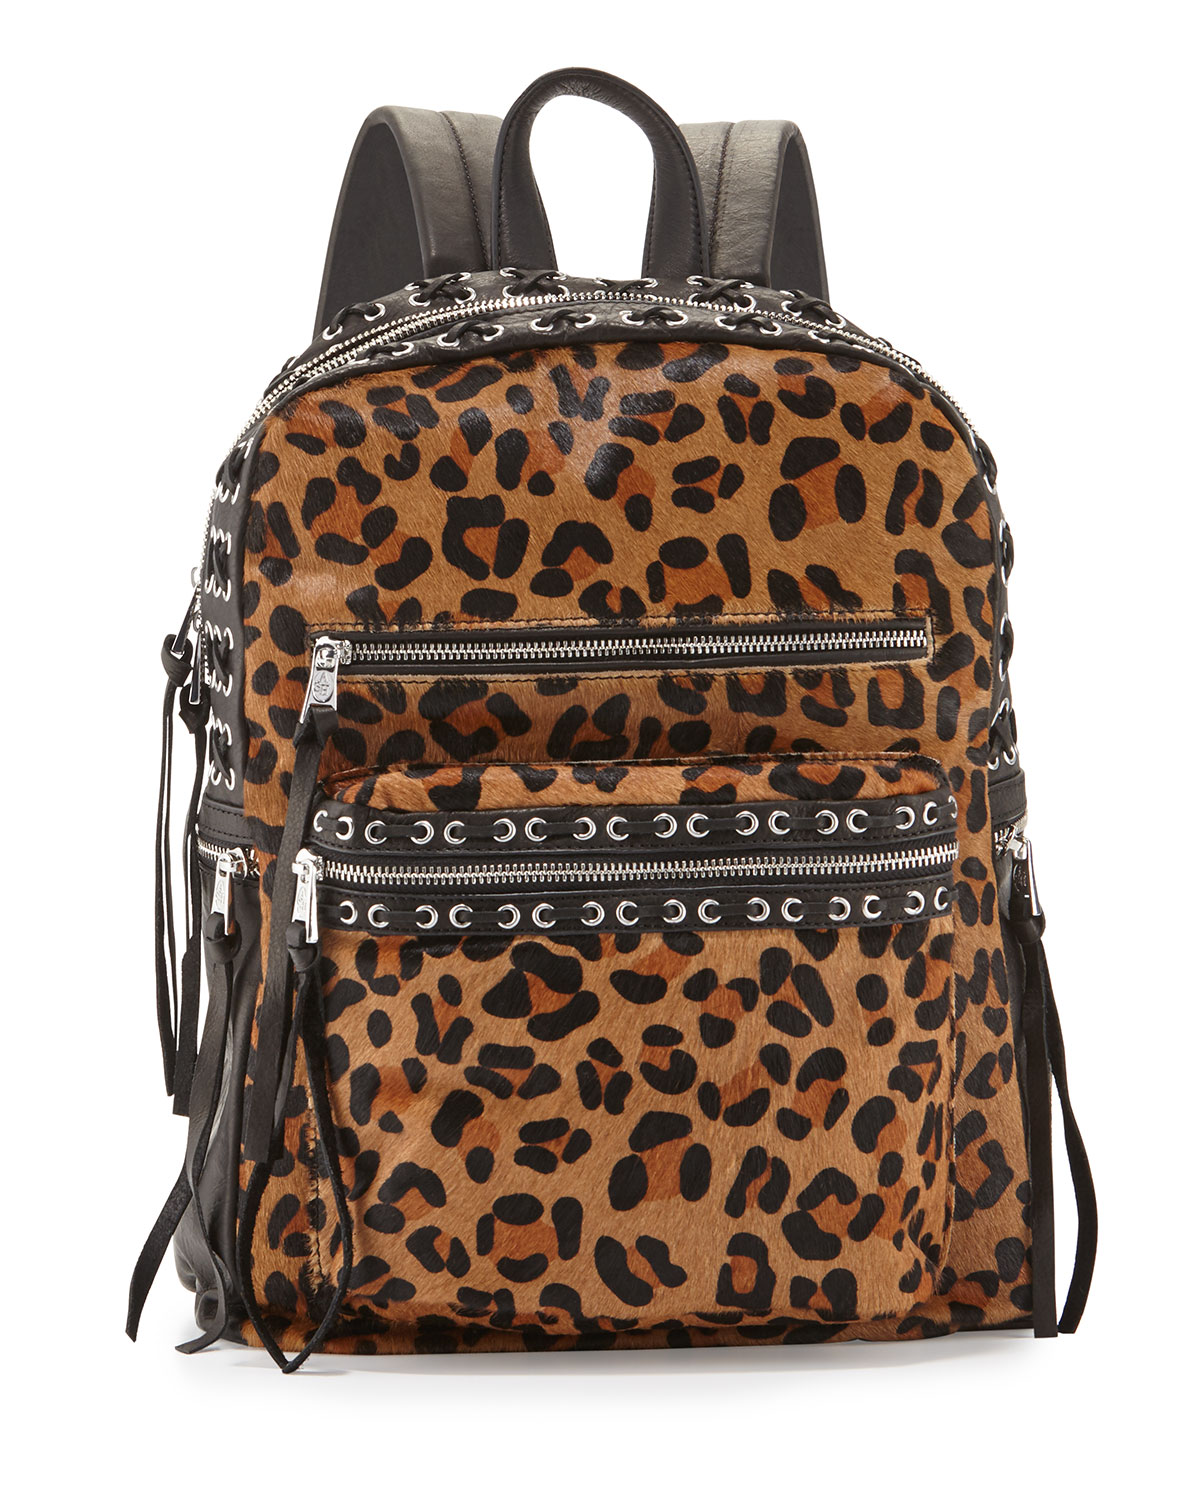 Billy Leopard-Print Laced Backpack, Leopard/Black